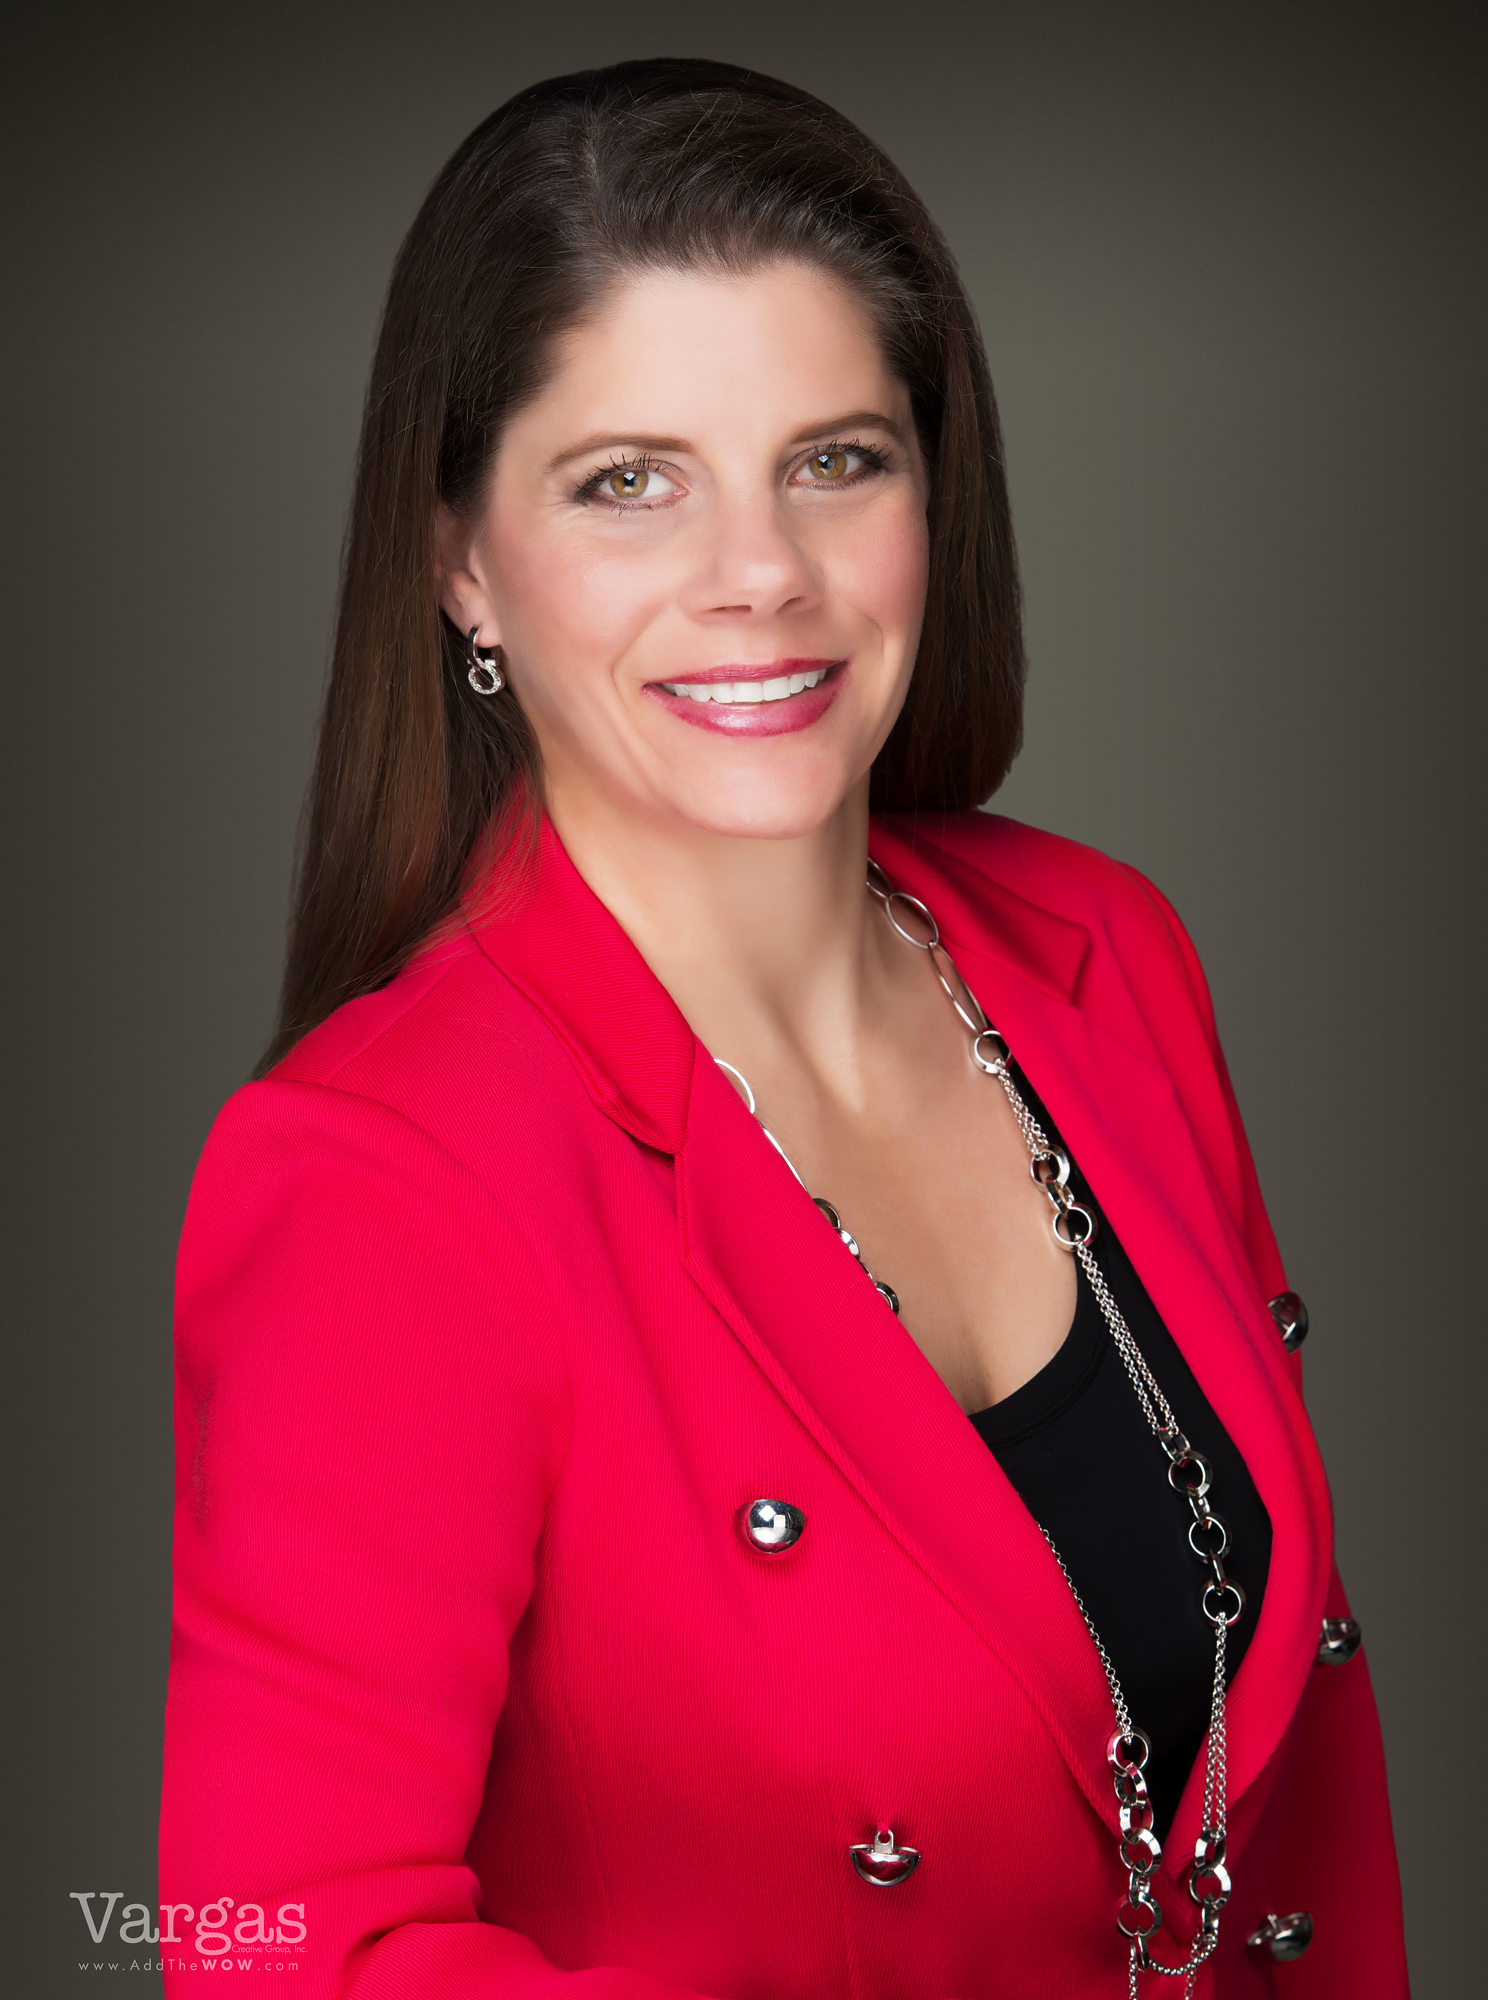 Karyn-Schonherz_-Real-Estate-Agent-Portrait-Business-Head-shot-2.png